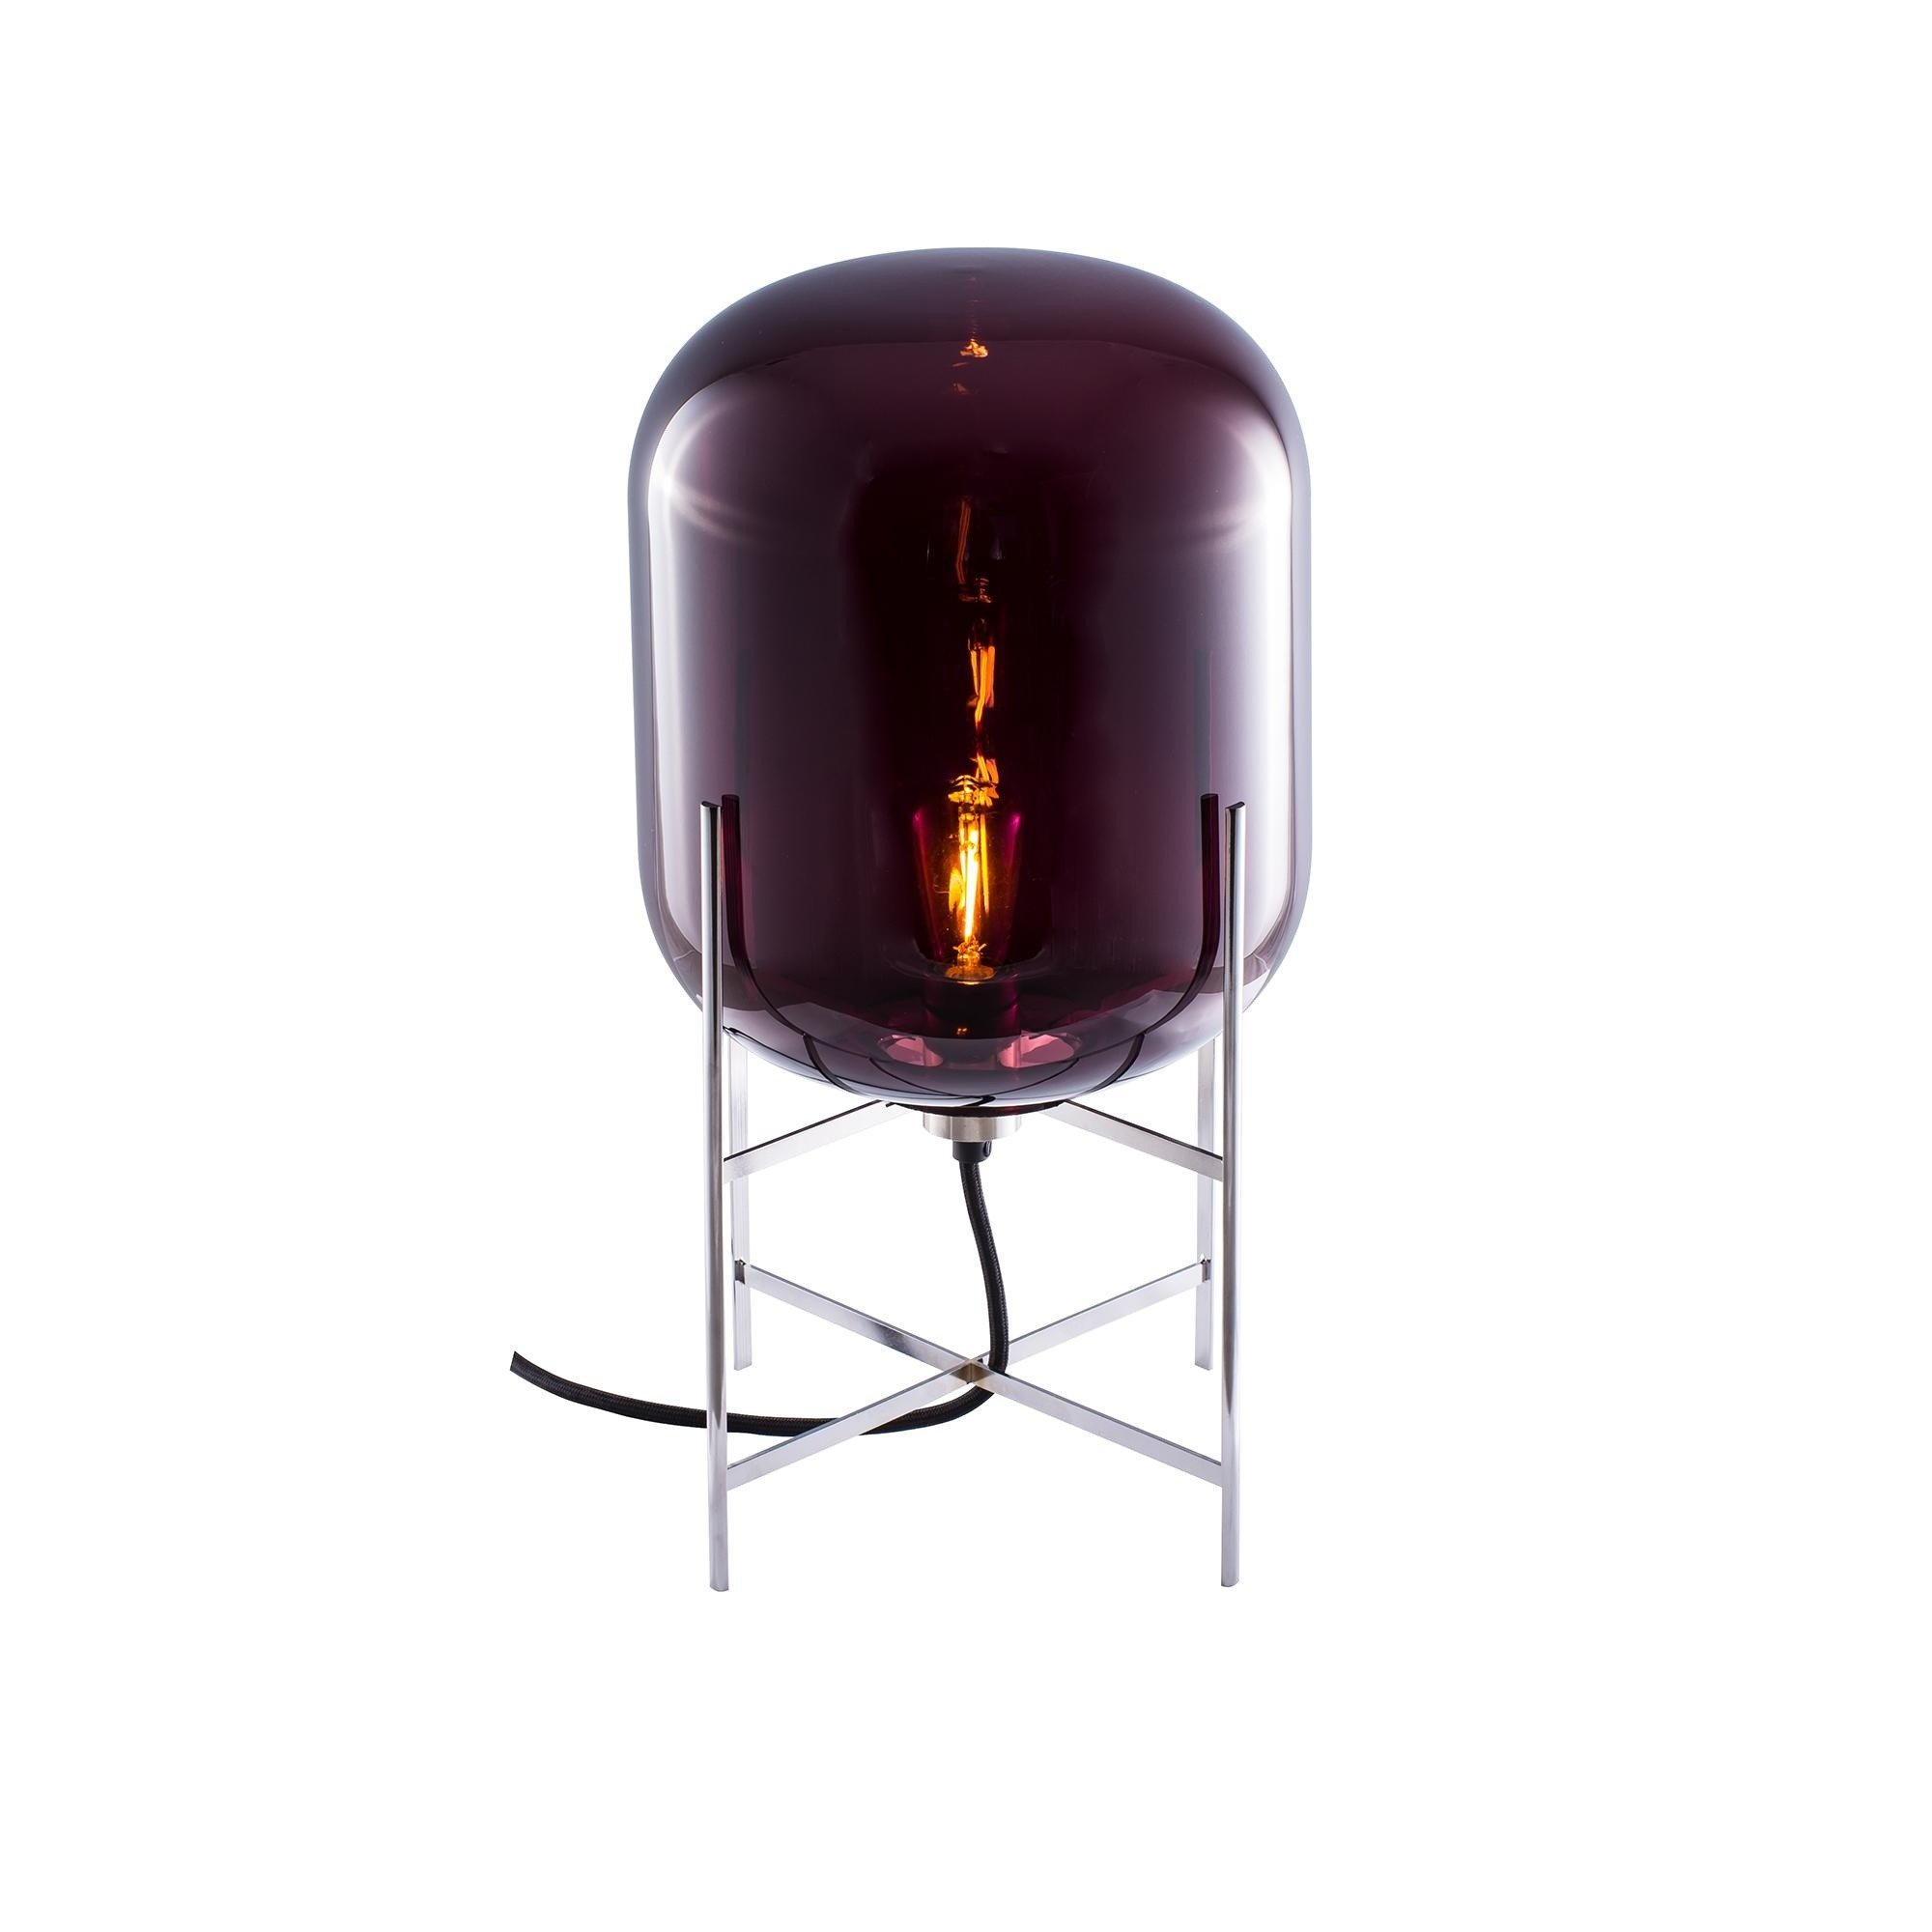 Oda table lamp h 45cm pulpo ambientedirect pulpo oda table lamp h 45cm aubergineframe mozeypictures Image collections